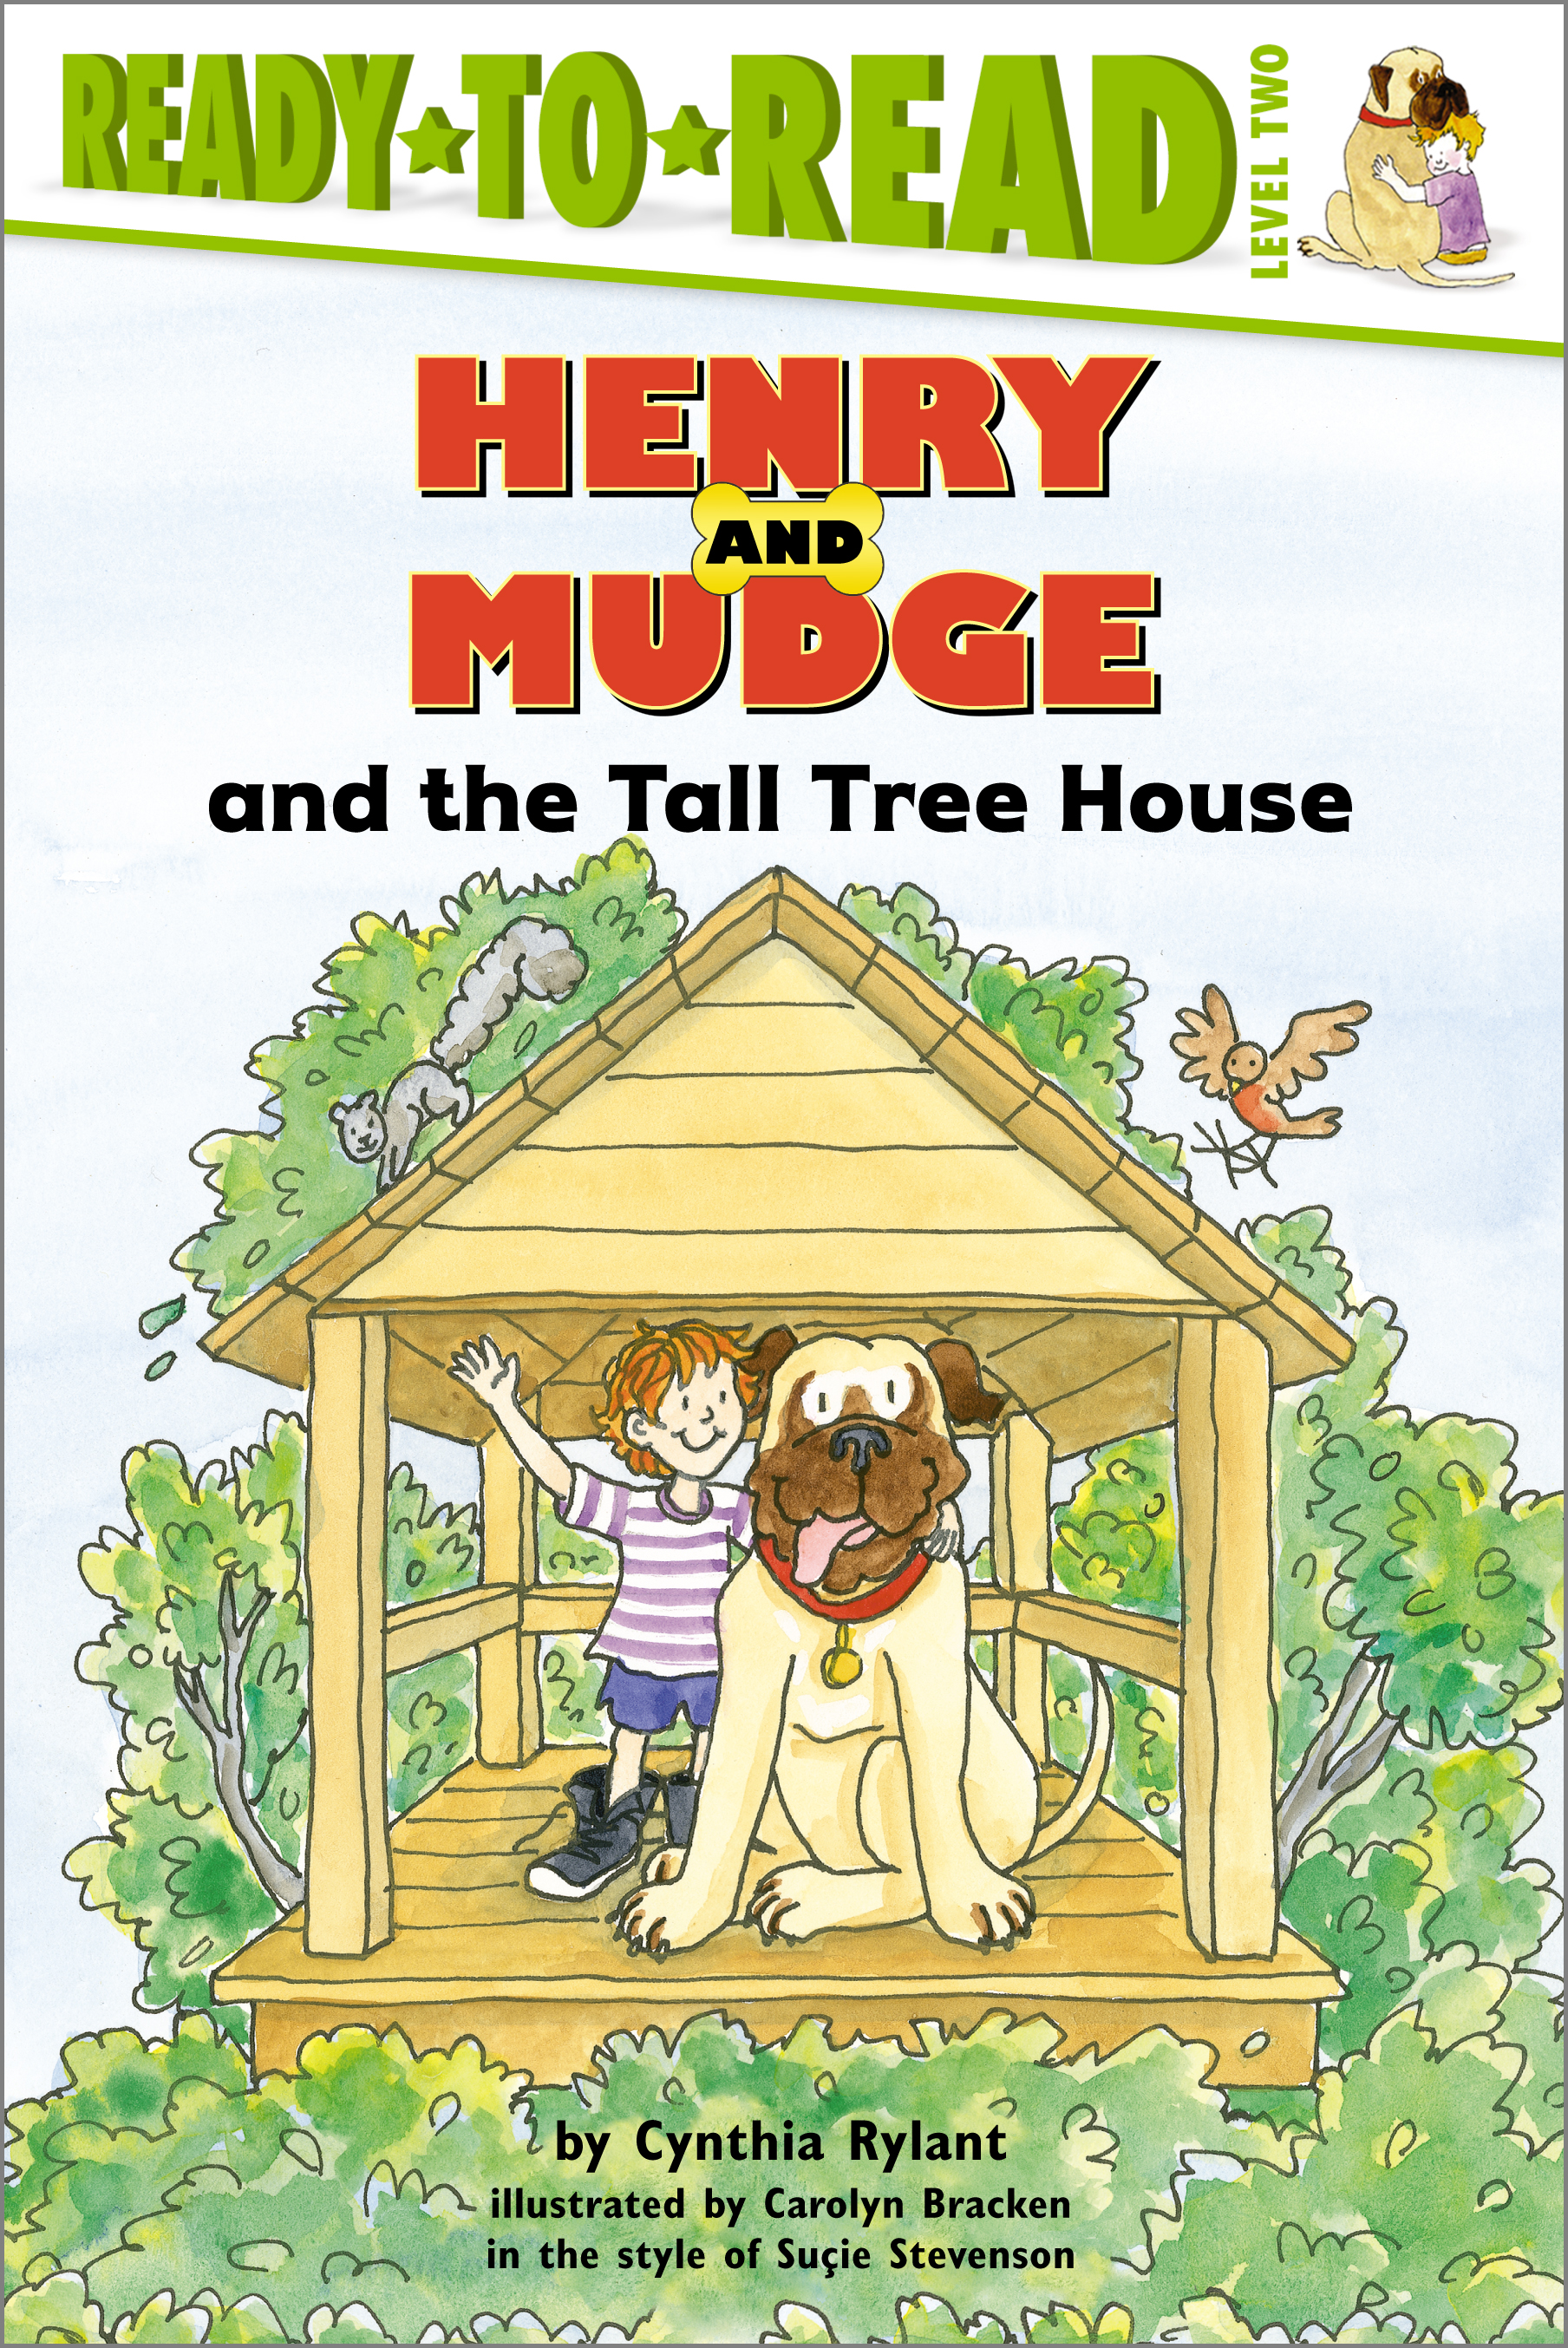 Book Cover Image (jpg): Henry and Mudge and the Tall Tree House